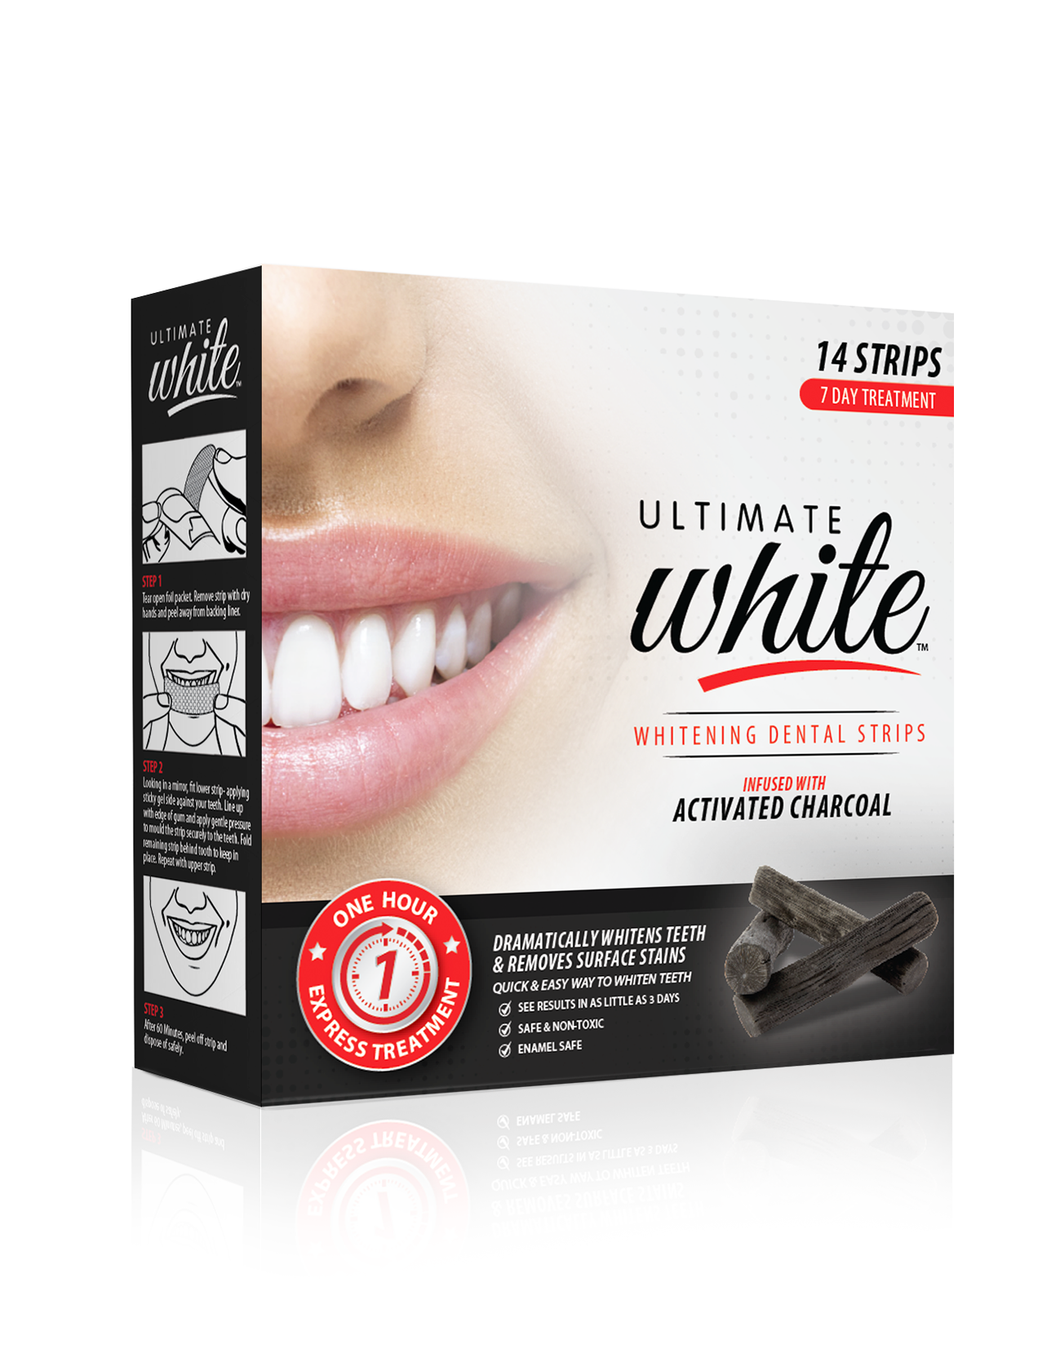 Ultimate White Whitening Dental Strips Infused With Activated Charcoal 7 Day Treatment